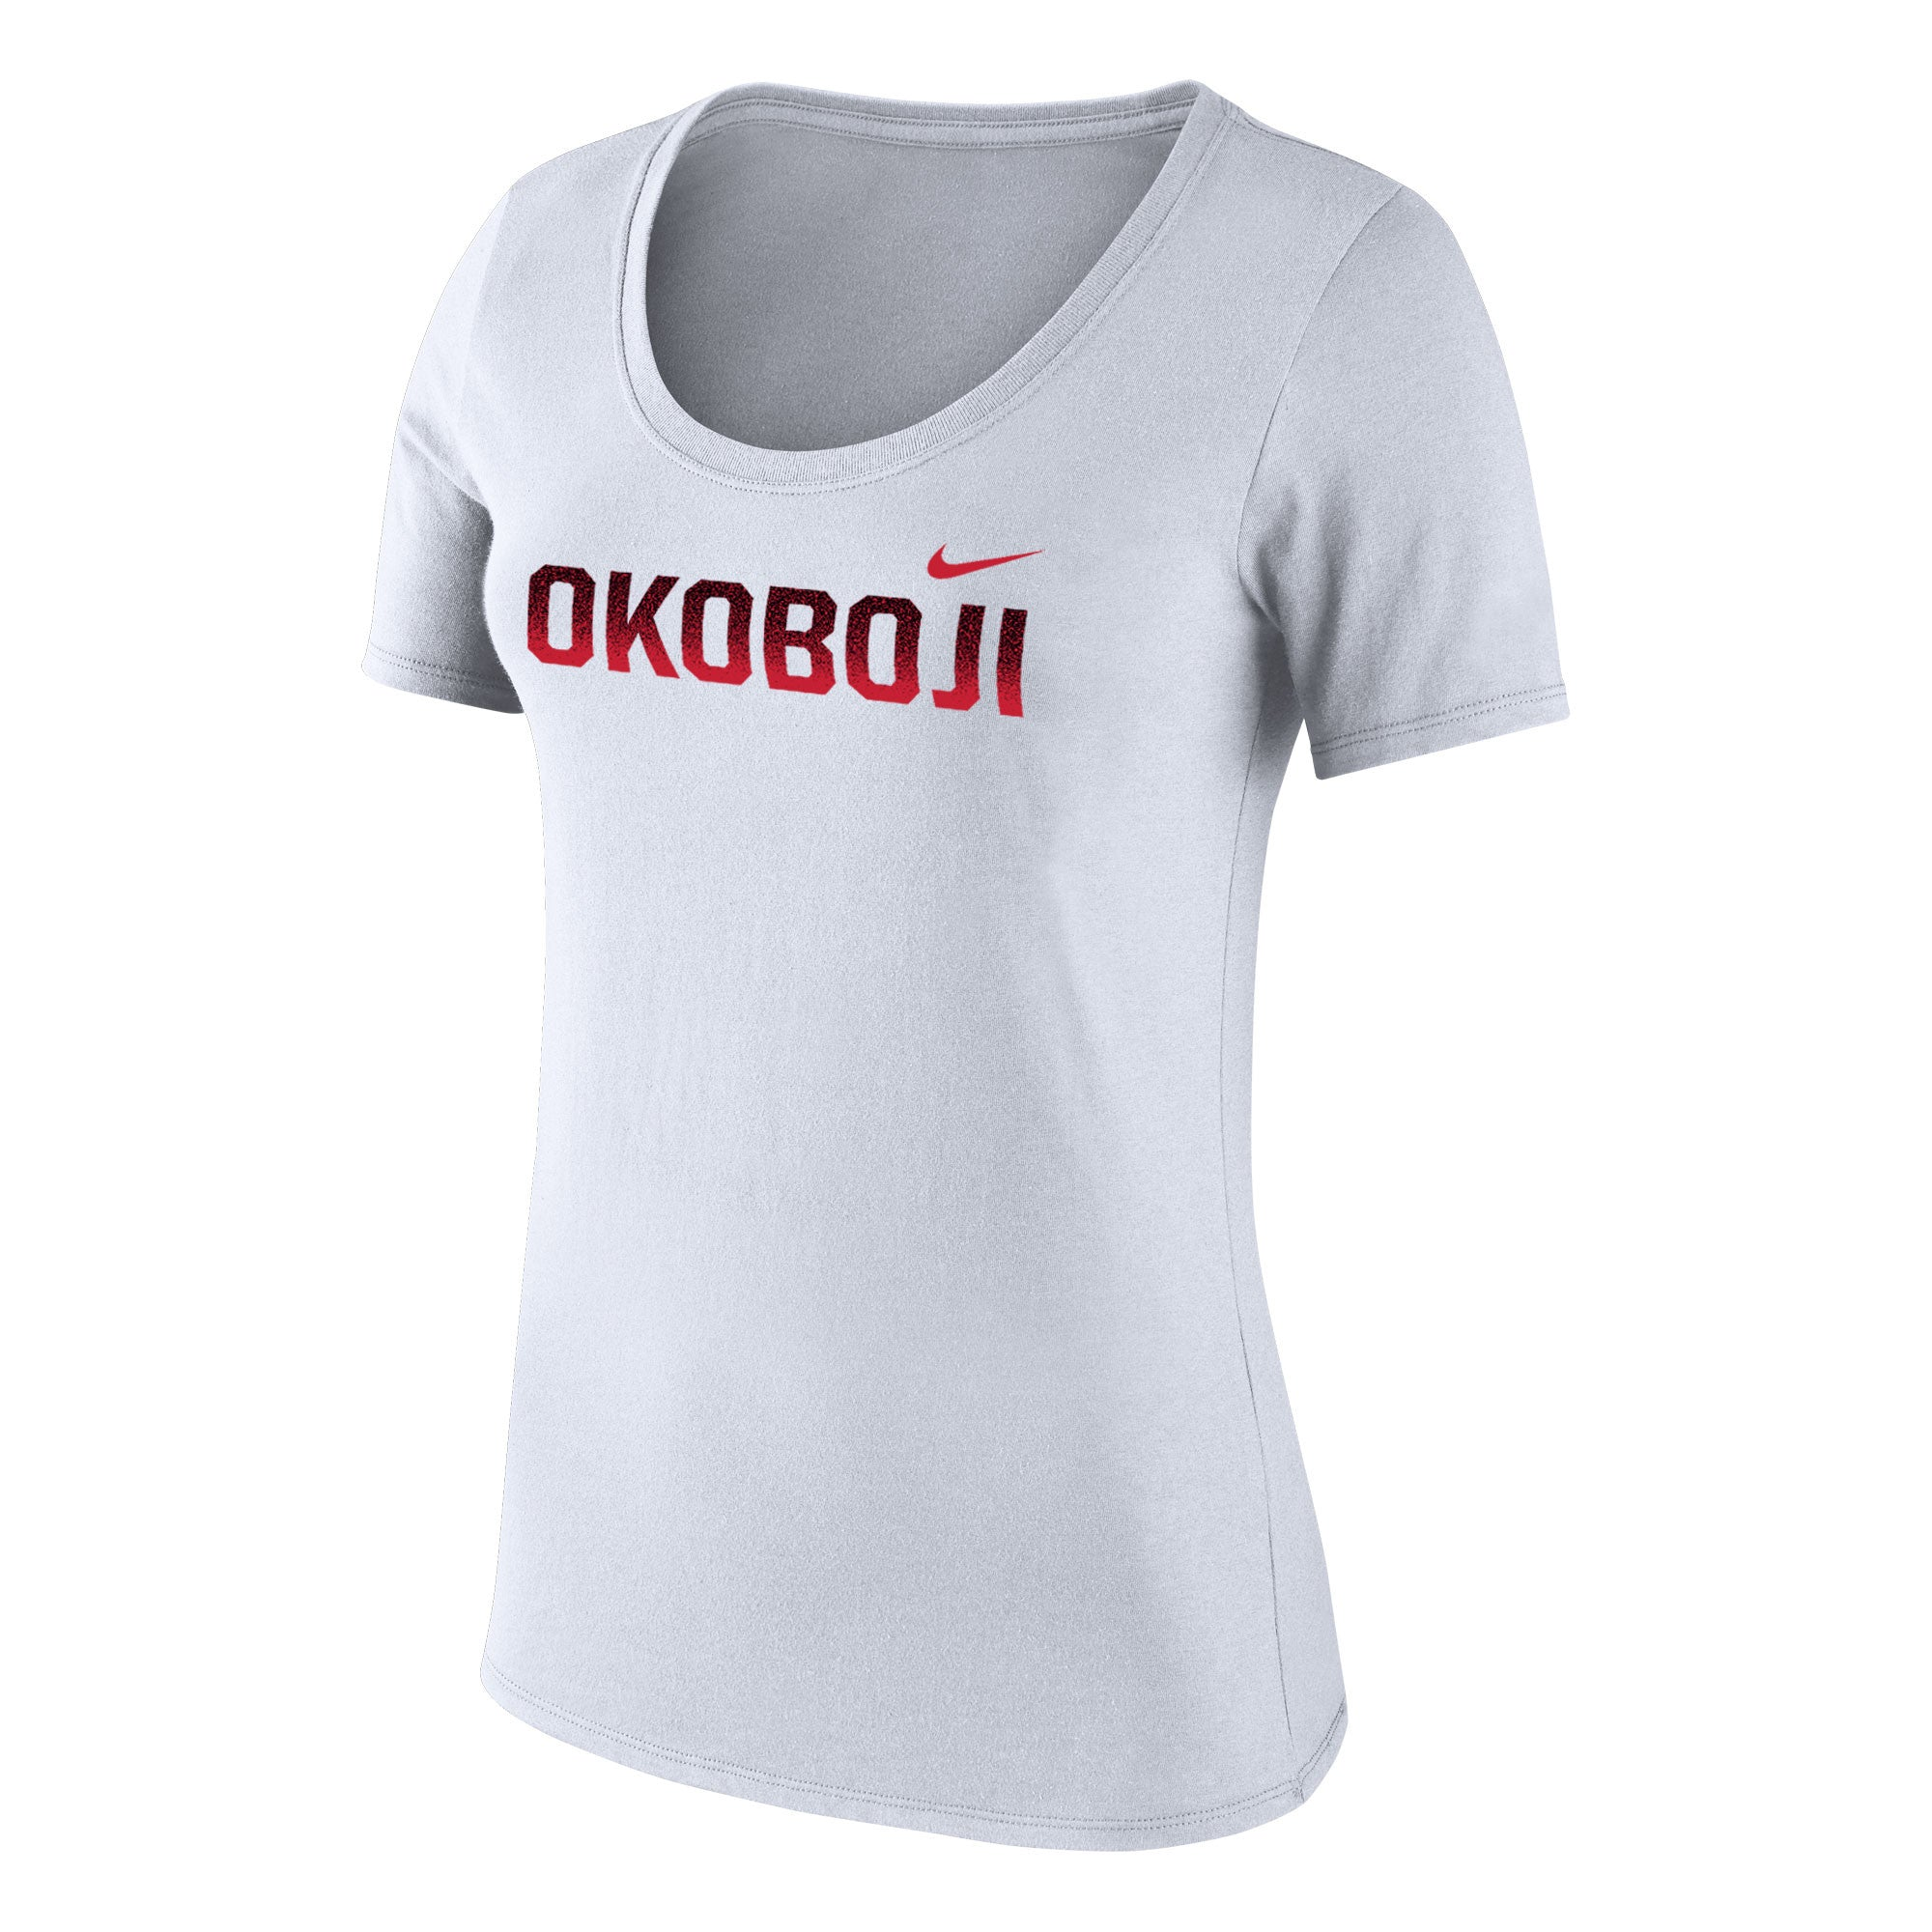 Women's Nike Core Short Sleeve Scoop Tee